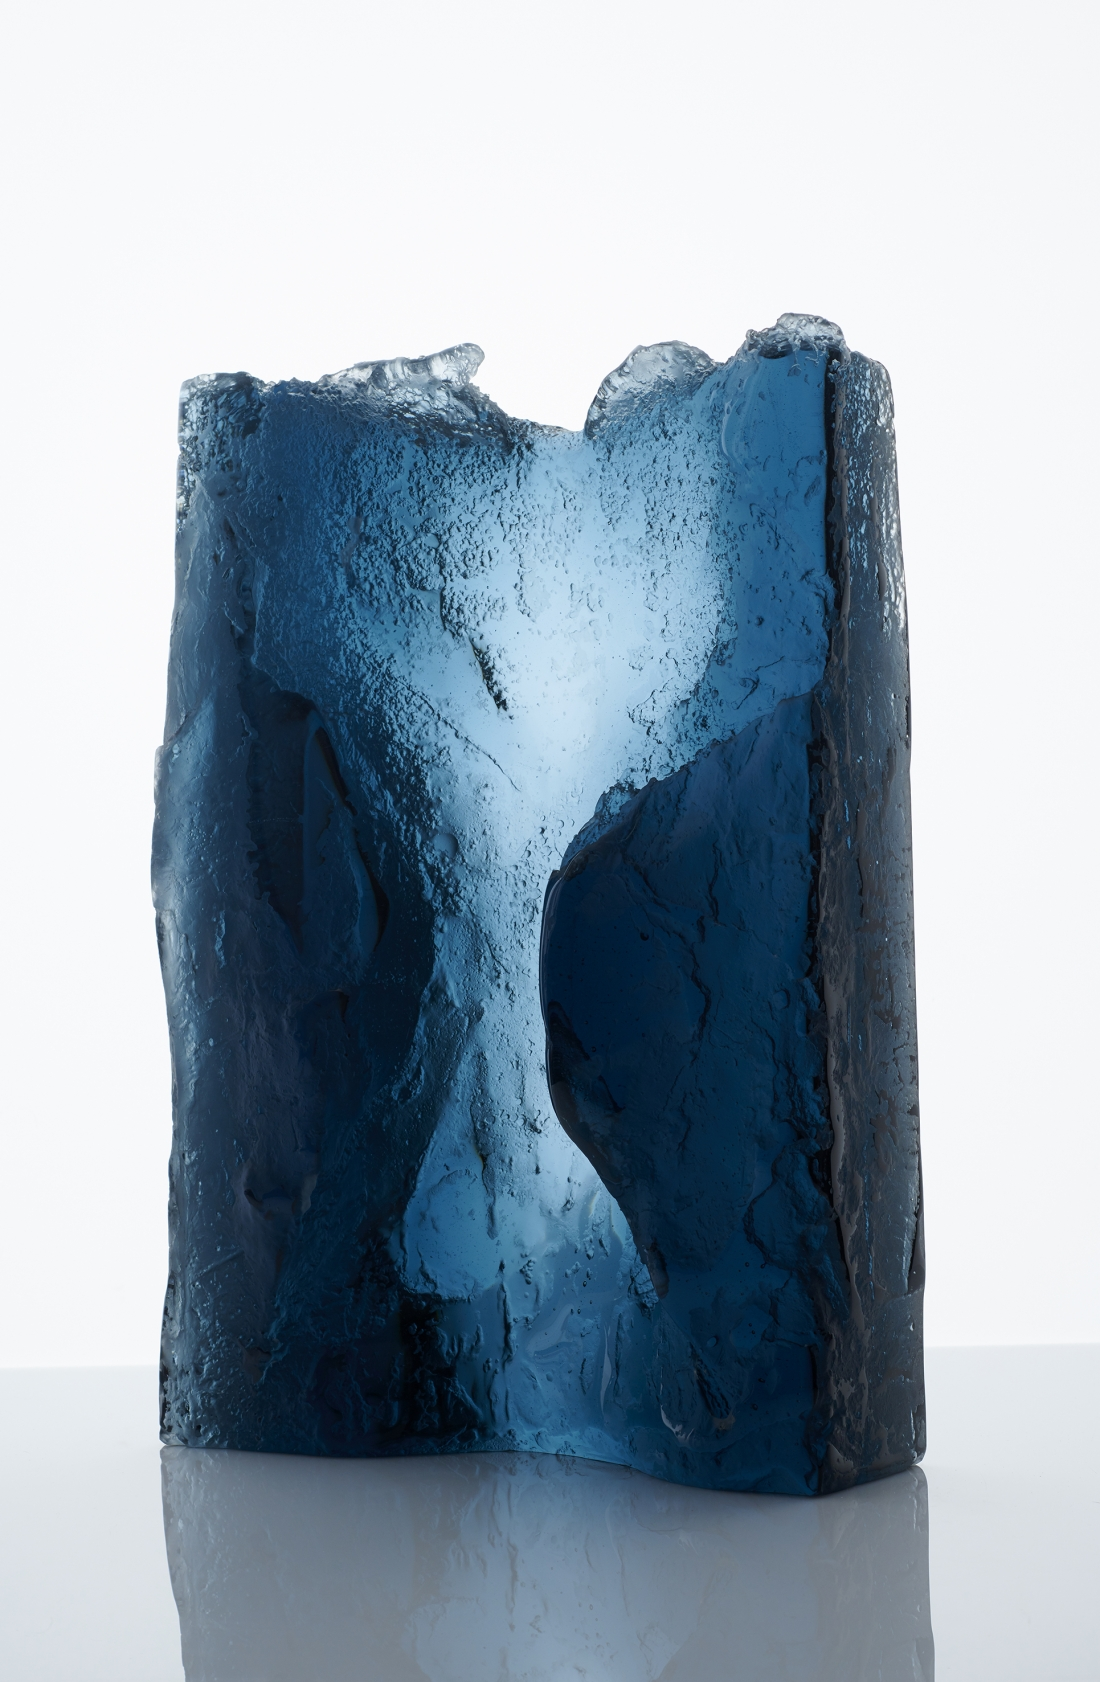 Joseph Harrington, Cascade, W 33 x H 46 x D 12cm, Cast Glass, Lost Ice Process with salt erosion, 2018 - Joanna Bird Contemporary Collections